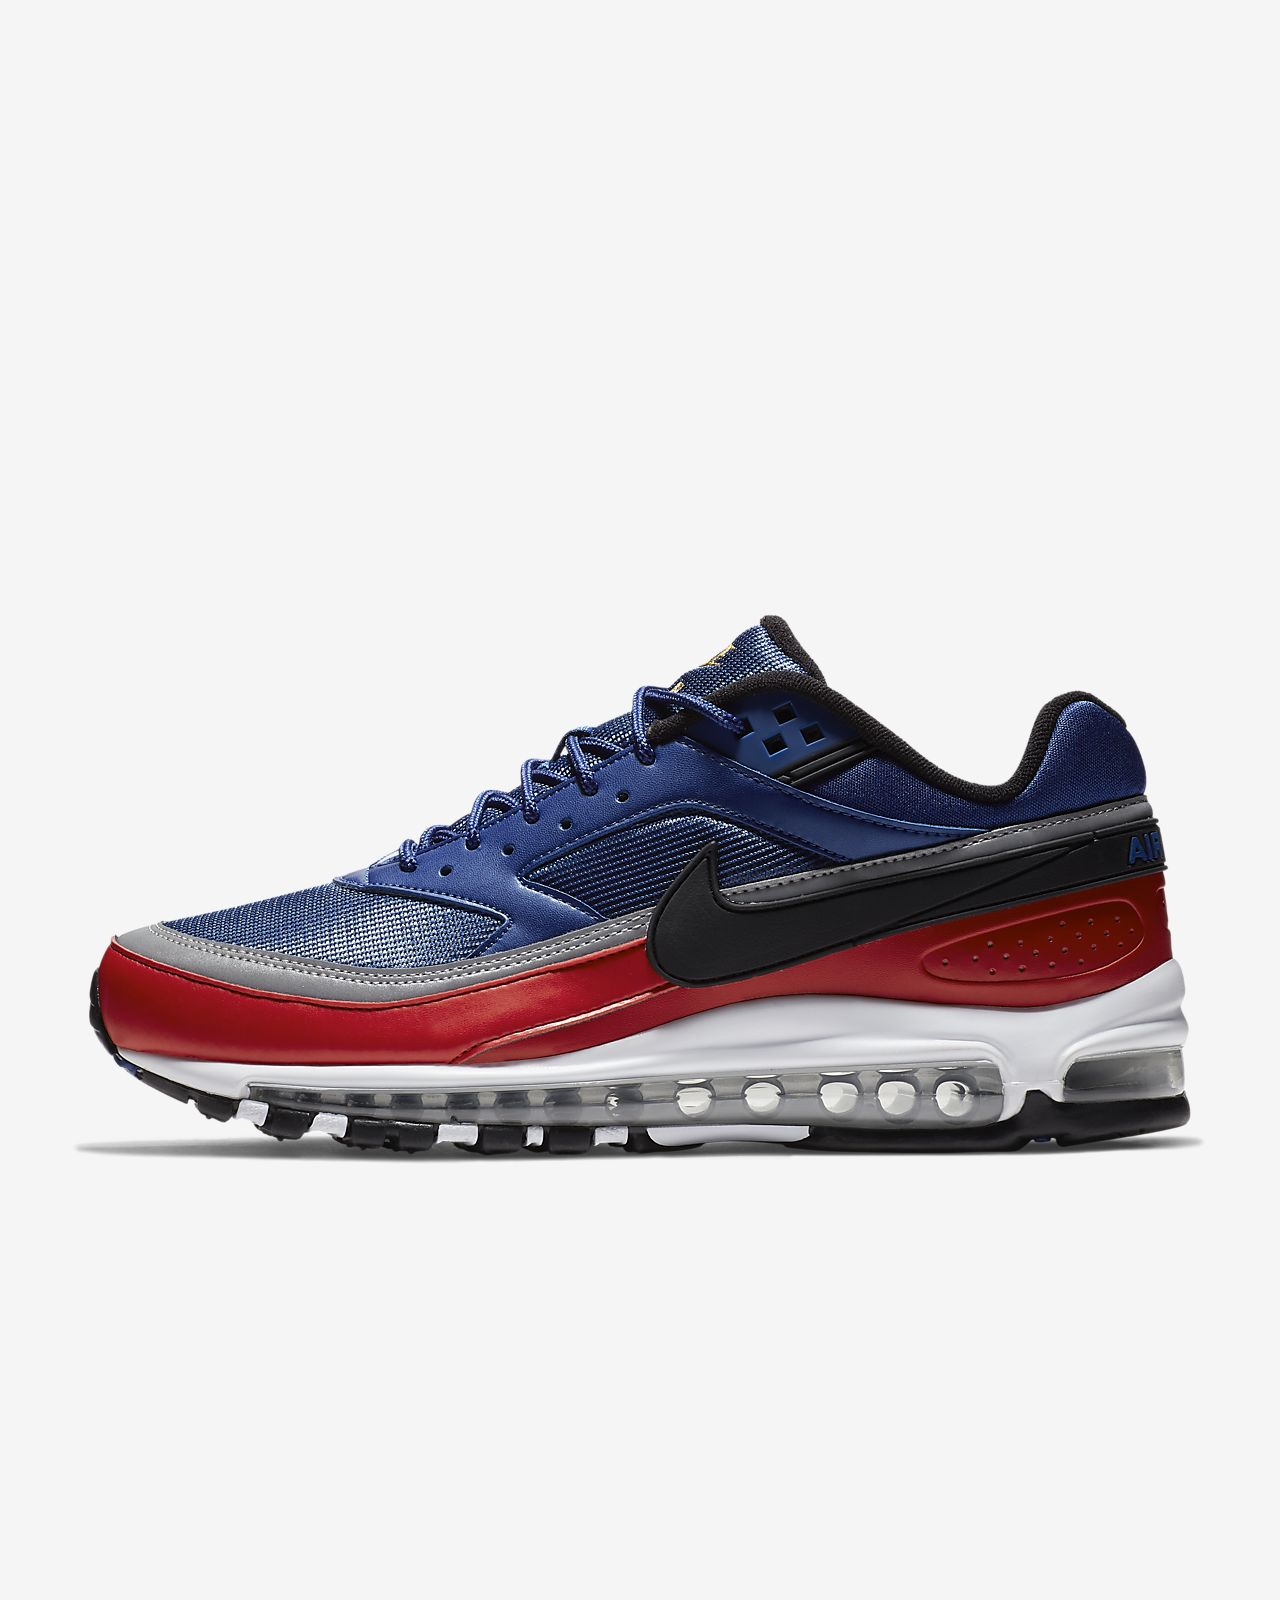 Chaussure Nike Air Max 97/BW pour Homme